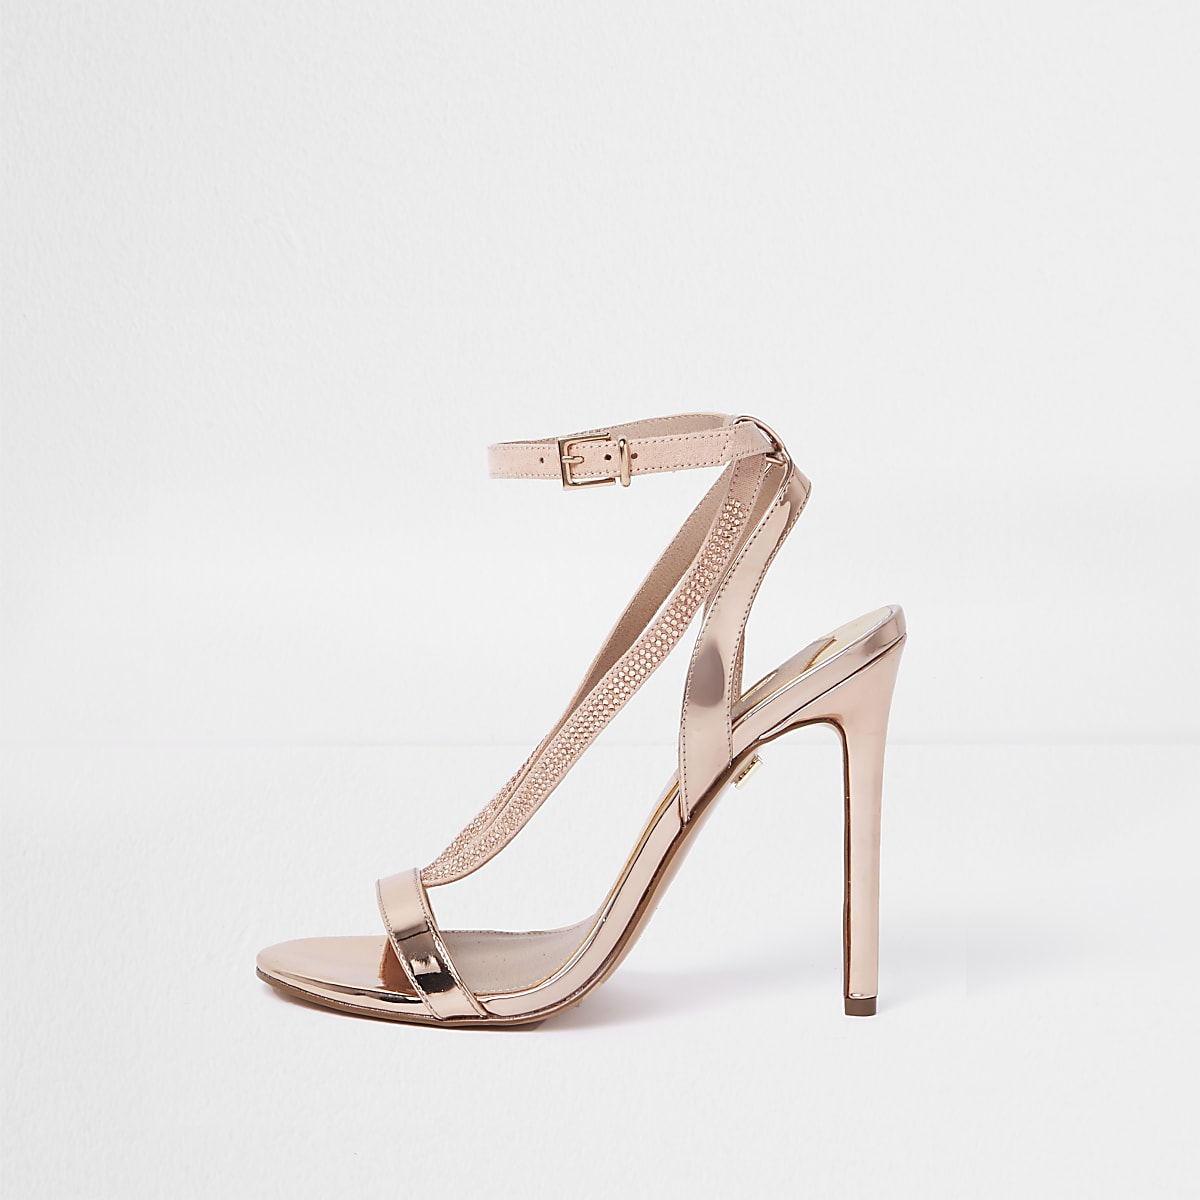 4660f8e07a4a Rose gold wide fit barely there sandals - Shoes - Shoes   Boots - women